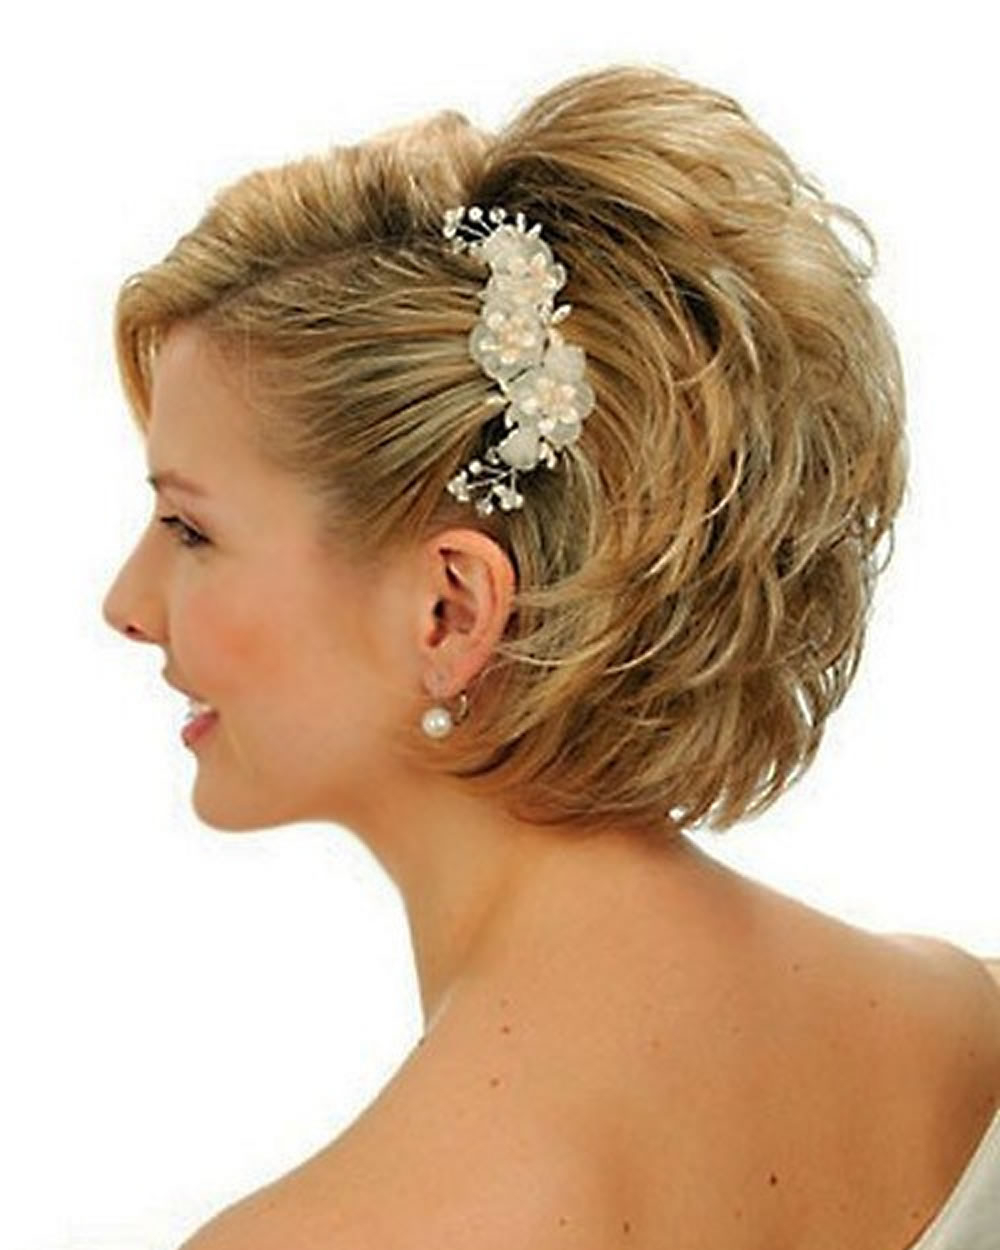 2018 Wedding Hairstyles And Make Up Guide For Short Hair – Hairstyles In Bridal Hairstyles Short Hair (View 18 of 25)